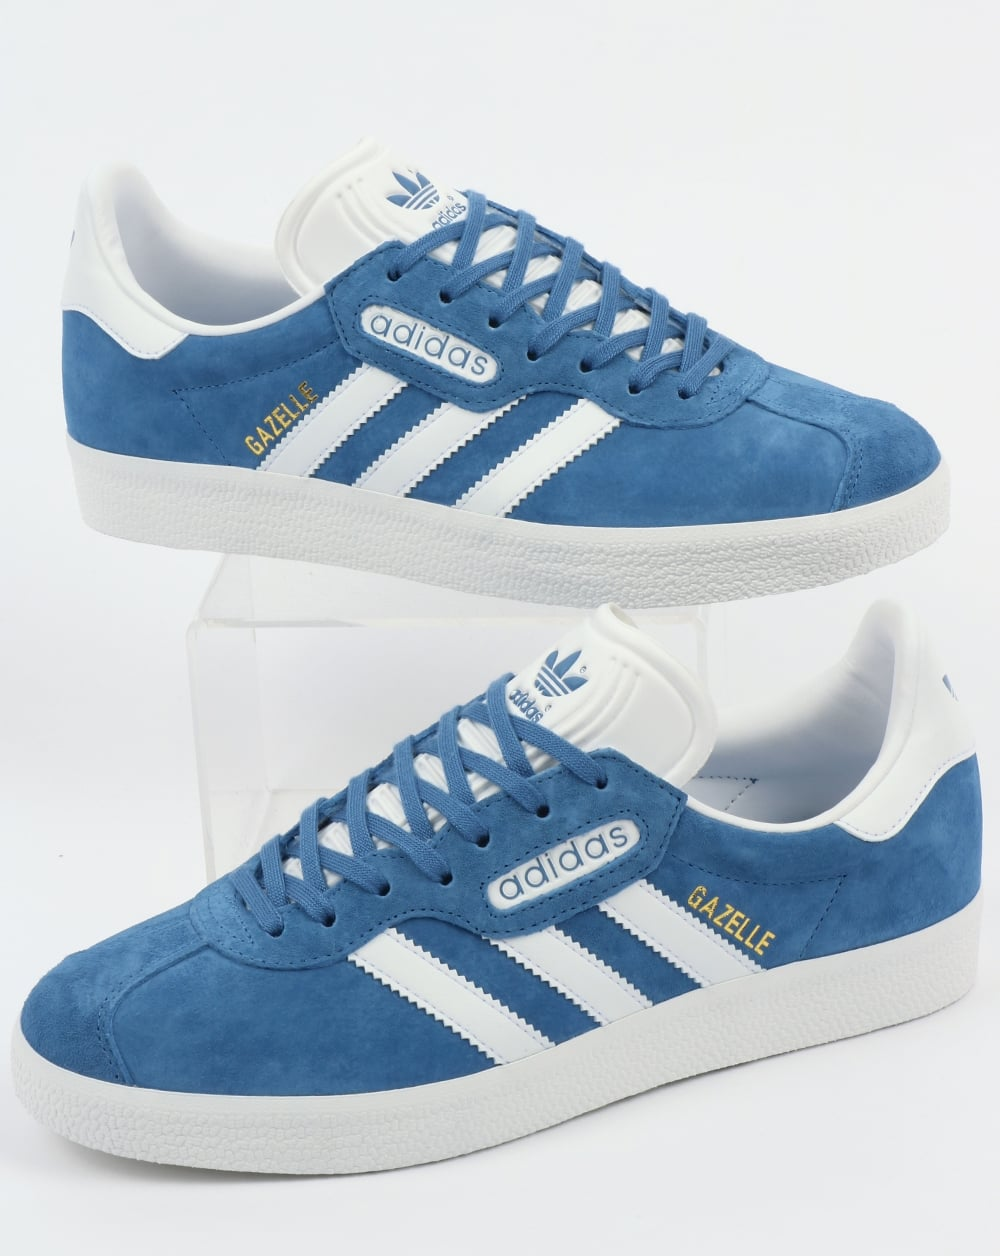 online retailer 21996 d2562 adidas Trainers Adidas Gazelle Super Trainers Royal Fade white